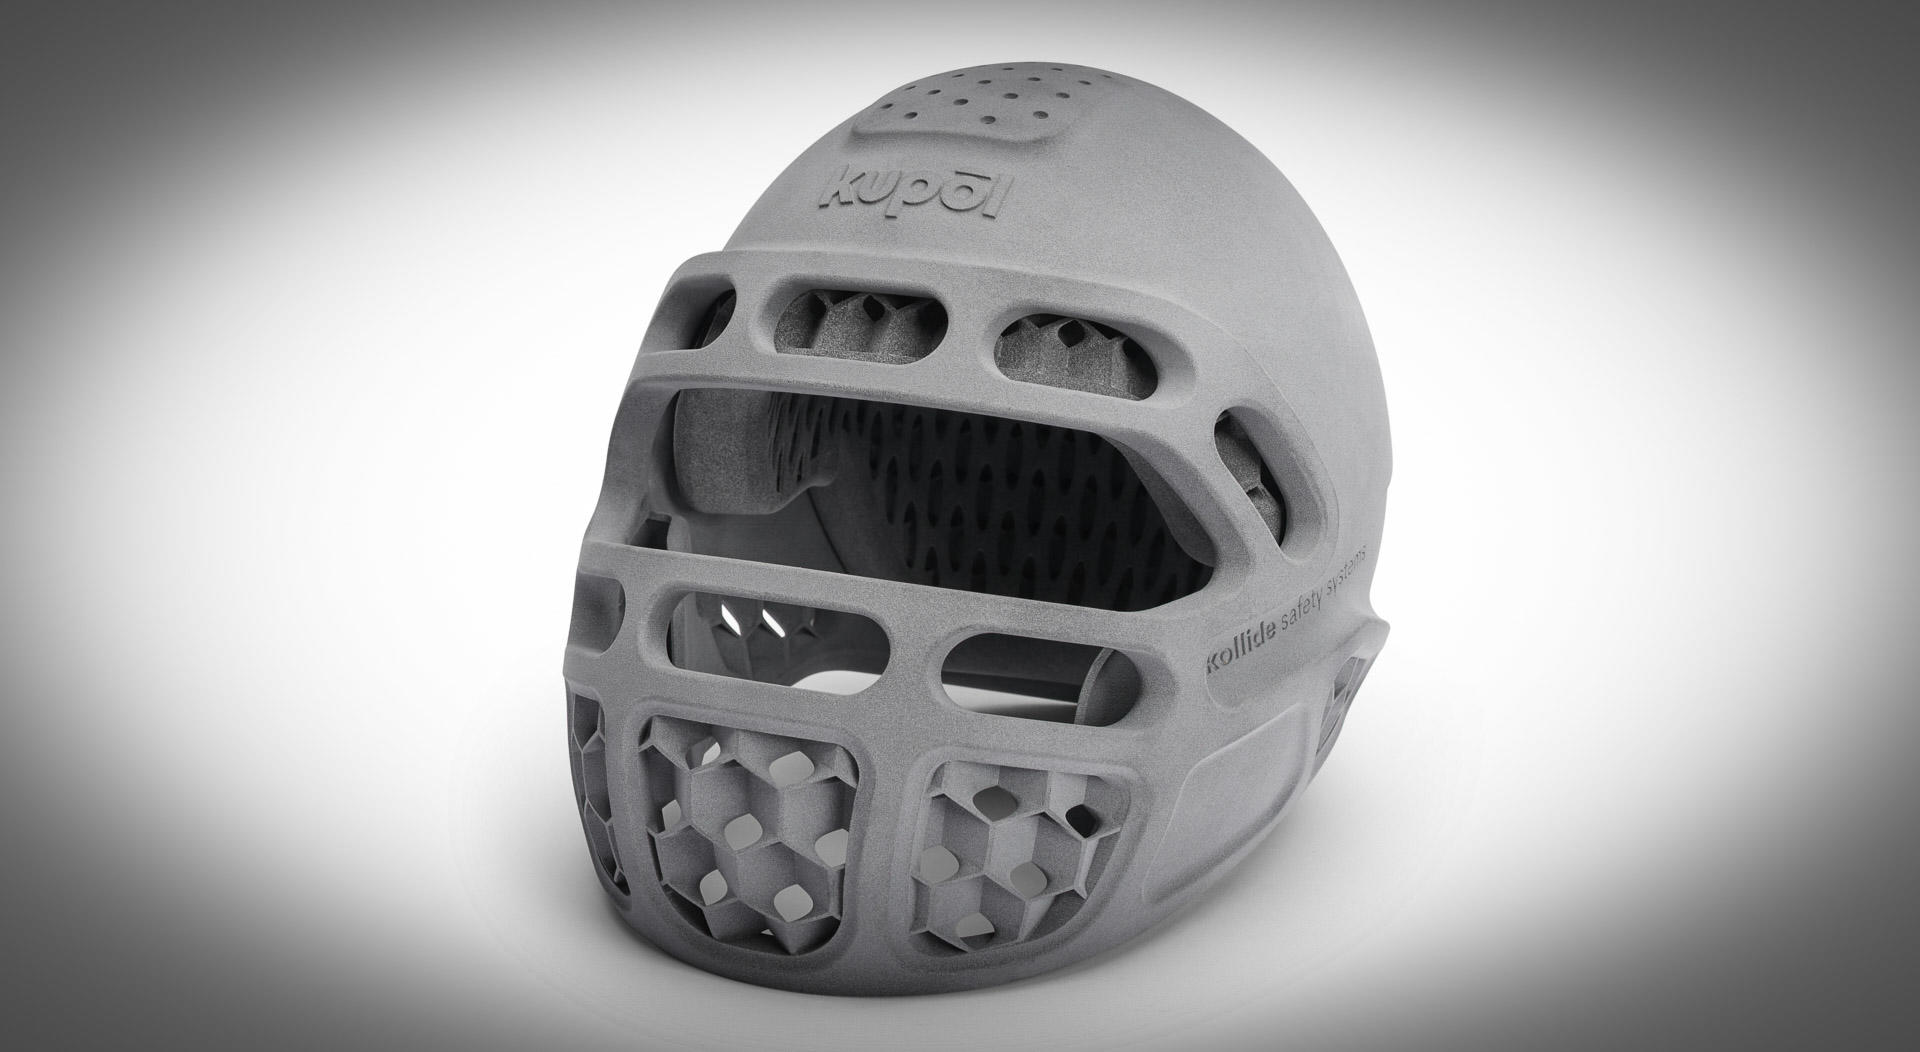 This Kupol 3D-printed helmet uses an interior protective layer made of absorbent thermoplastic polyurethane (TPU) that can be made with HP's Jet Fusion 5200 printer.